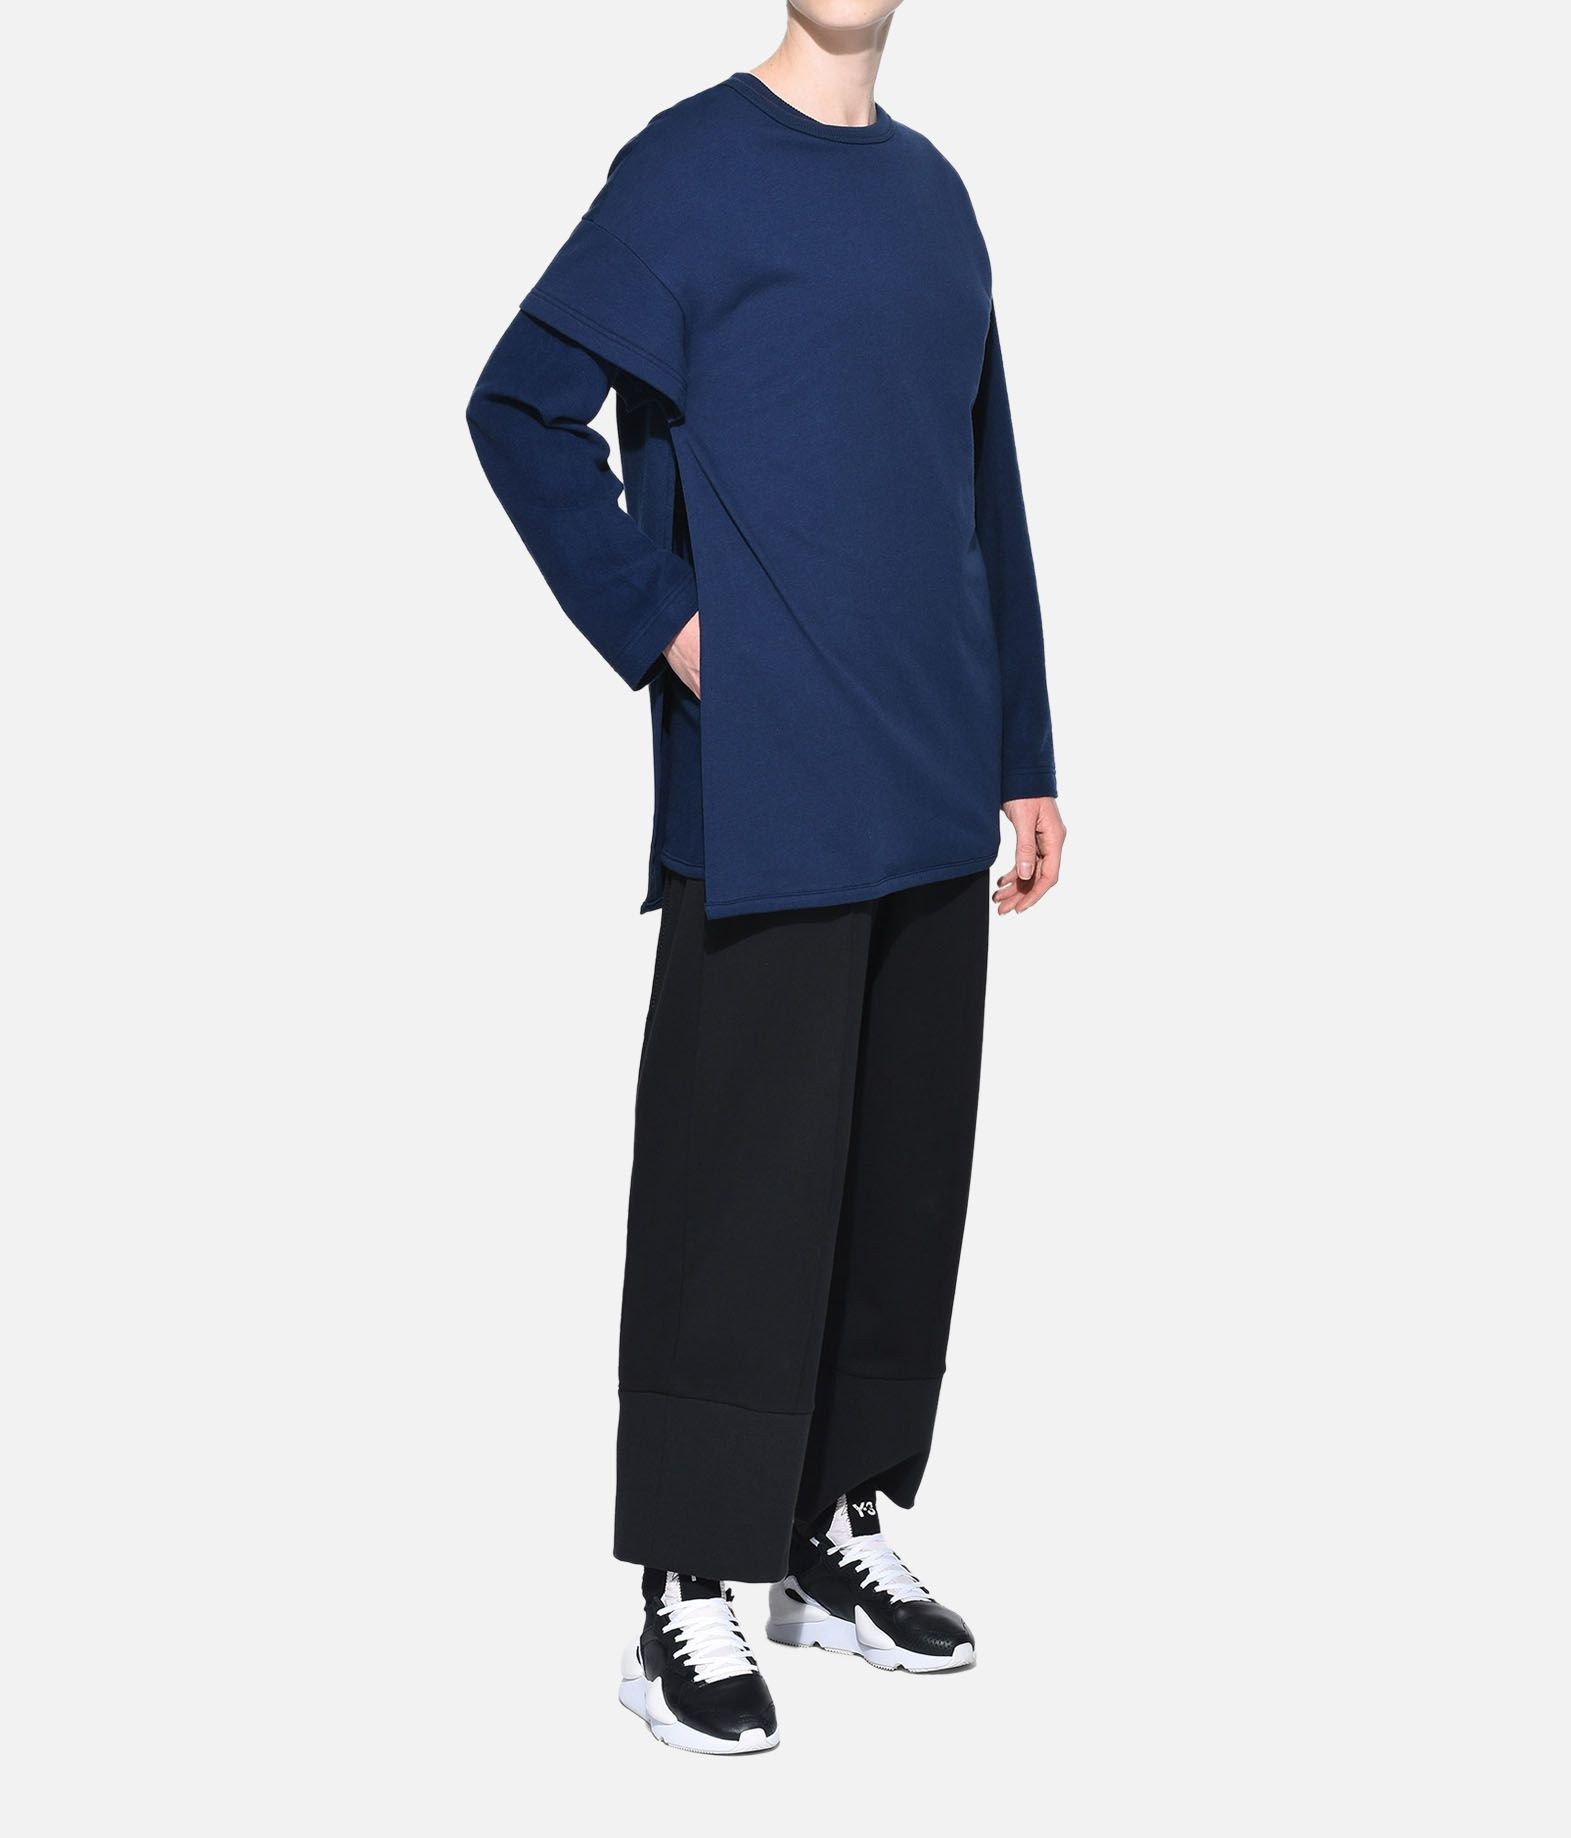 Y-3 Y-3 Two-Layer Fleece Sweater Felpa Donna a